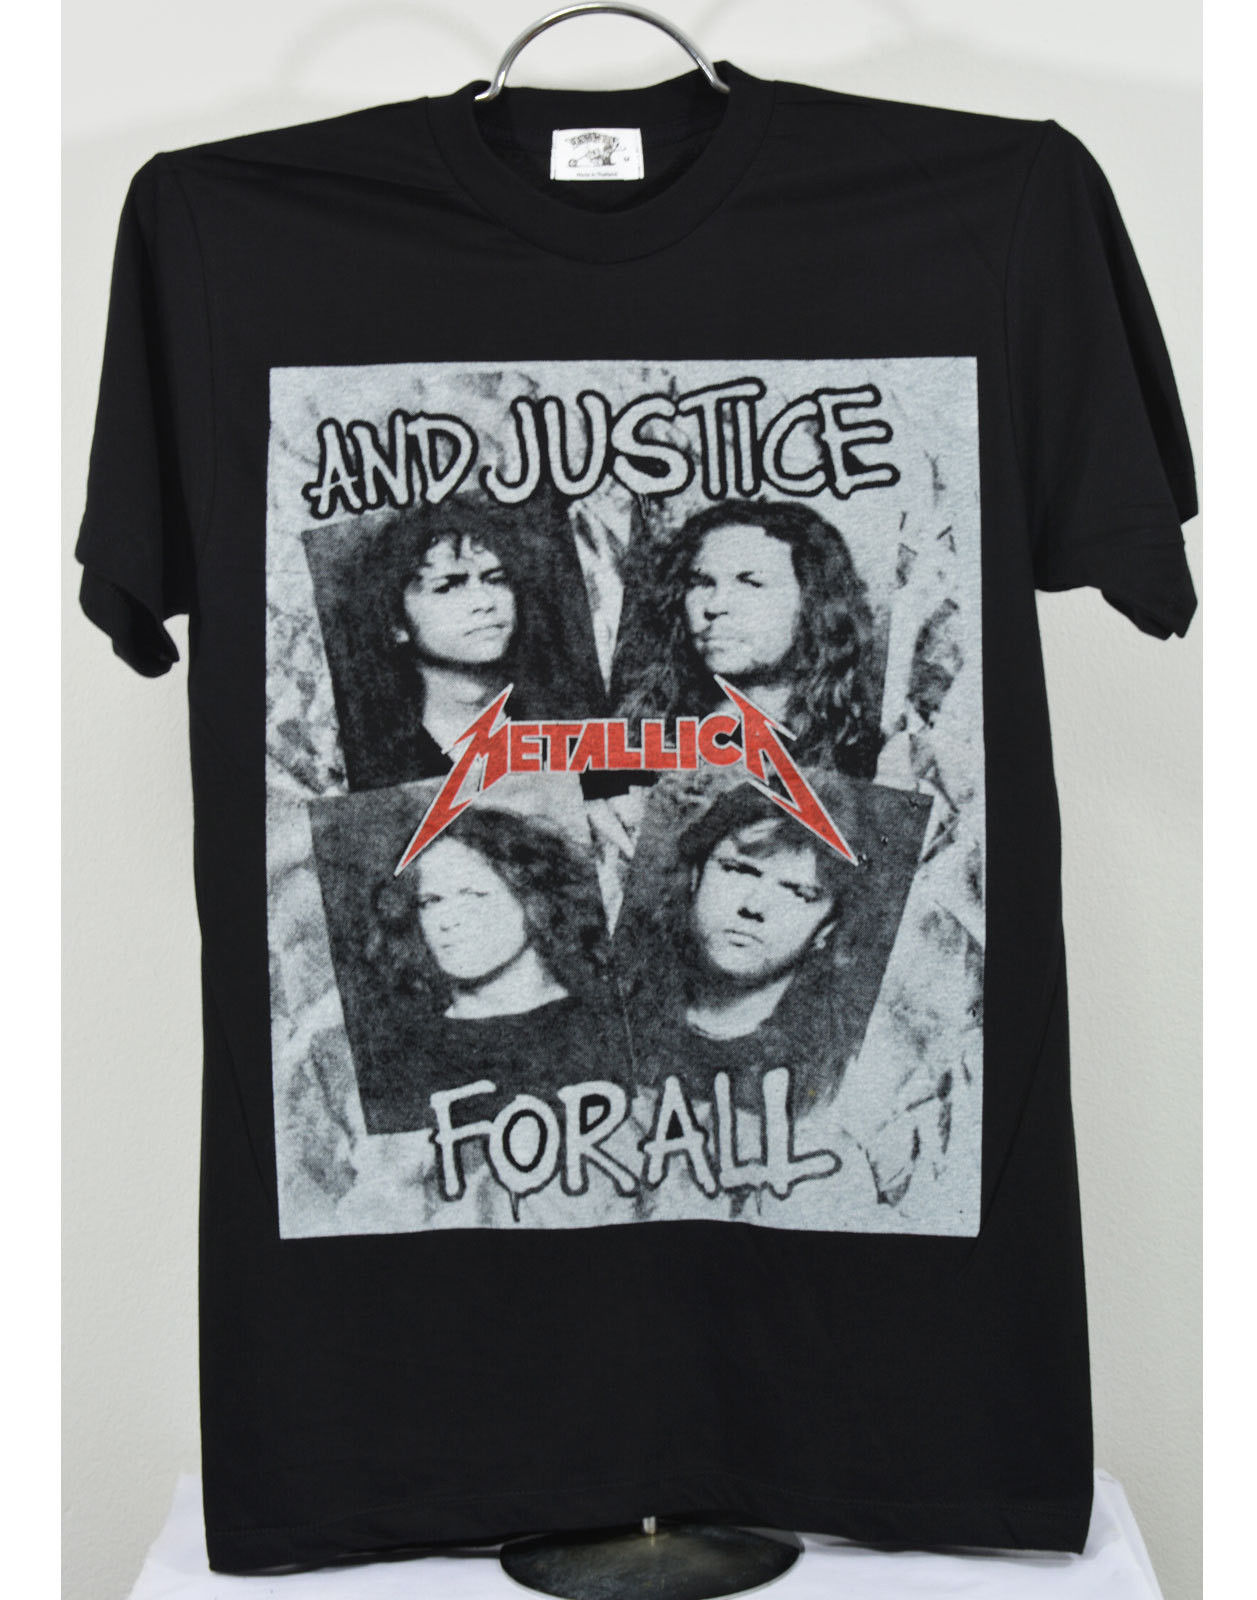 6462f49467 US $14.99 |Metallica And Justice For All T Shirt Metal rock band Summer  Short Sleeves Fashion-in T-Shirts from Men's Clothing on Aliexpress.com |  ...